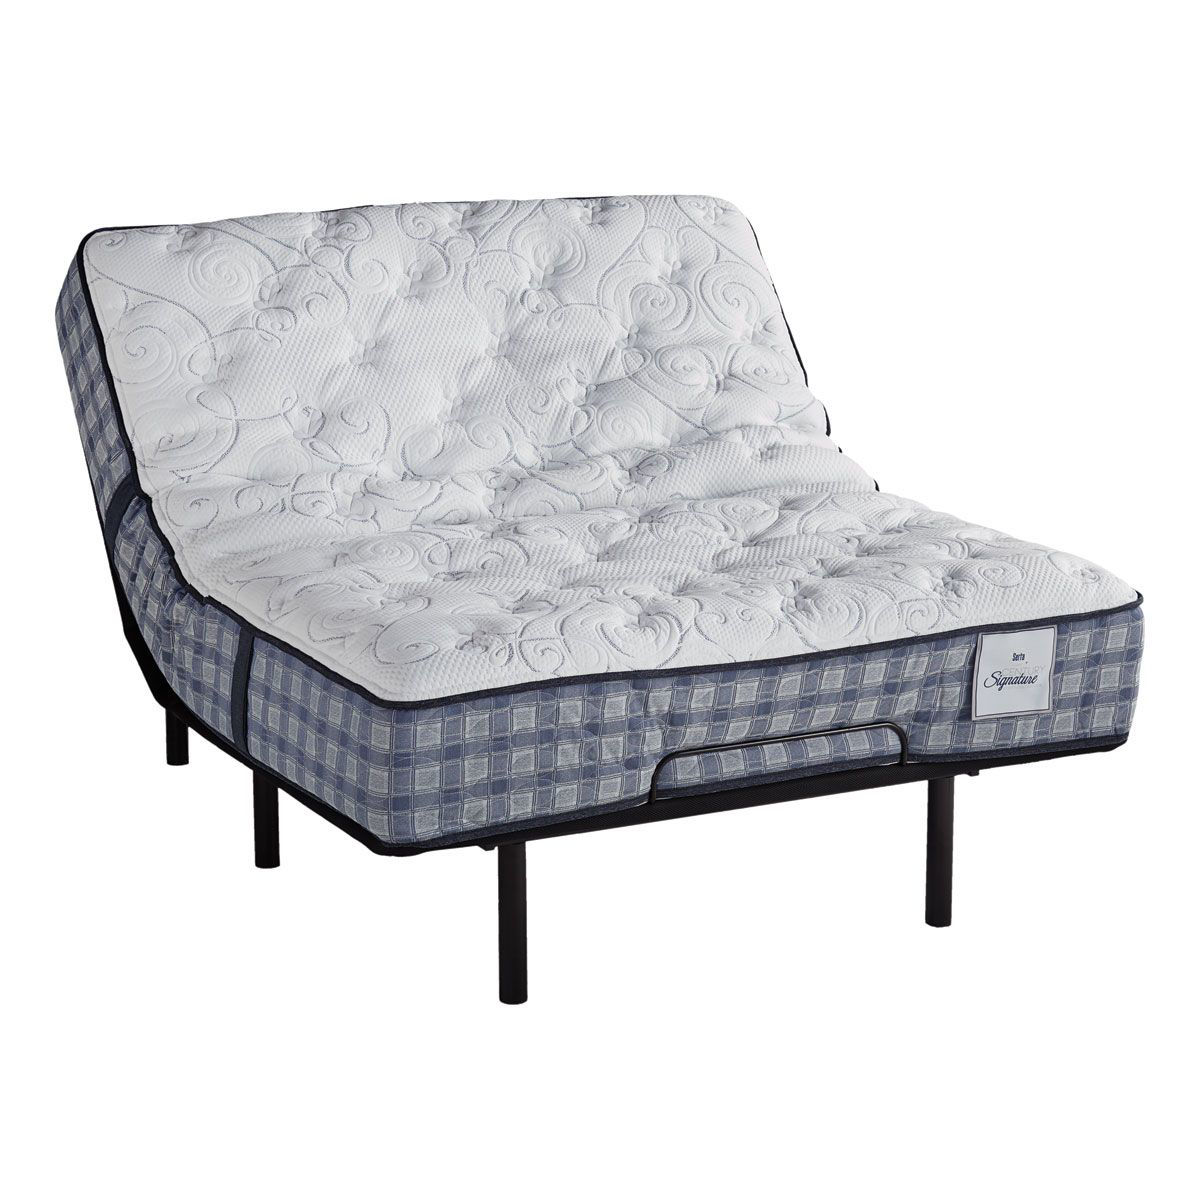 Picture of SERTA HAVENWOOD FIRM KING MATTRESS WITH FREE POWER BASE